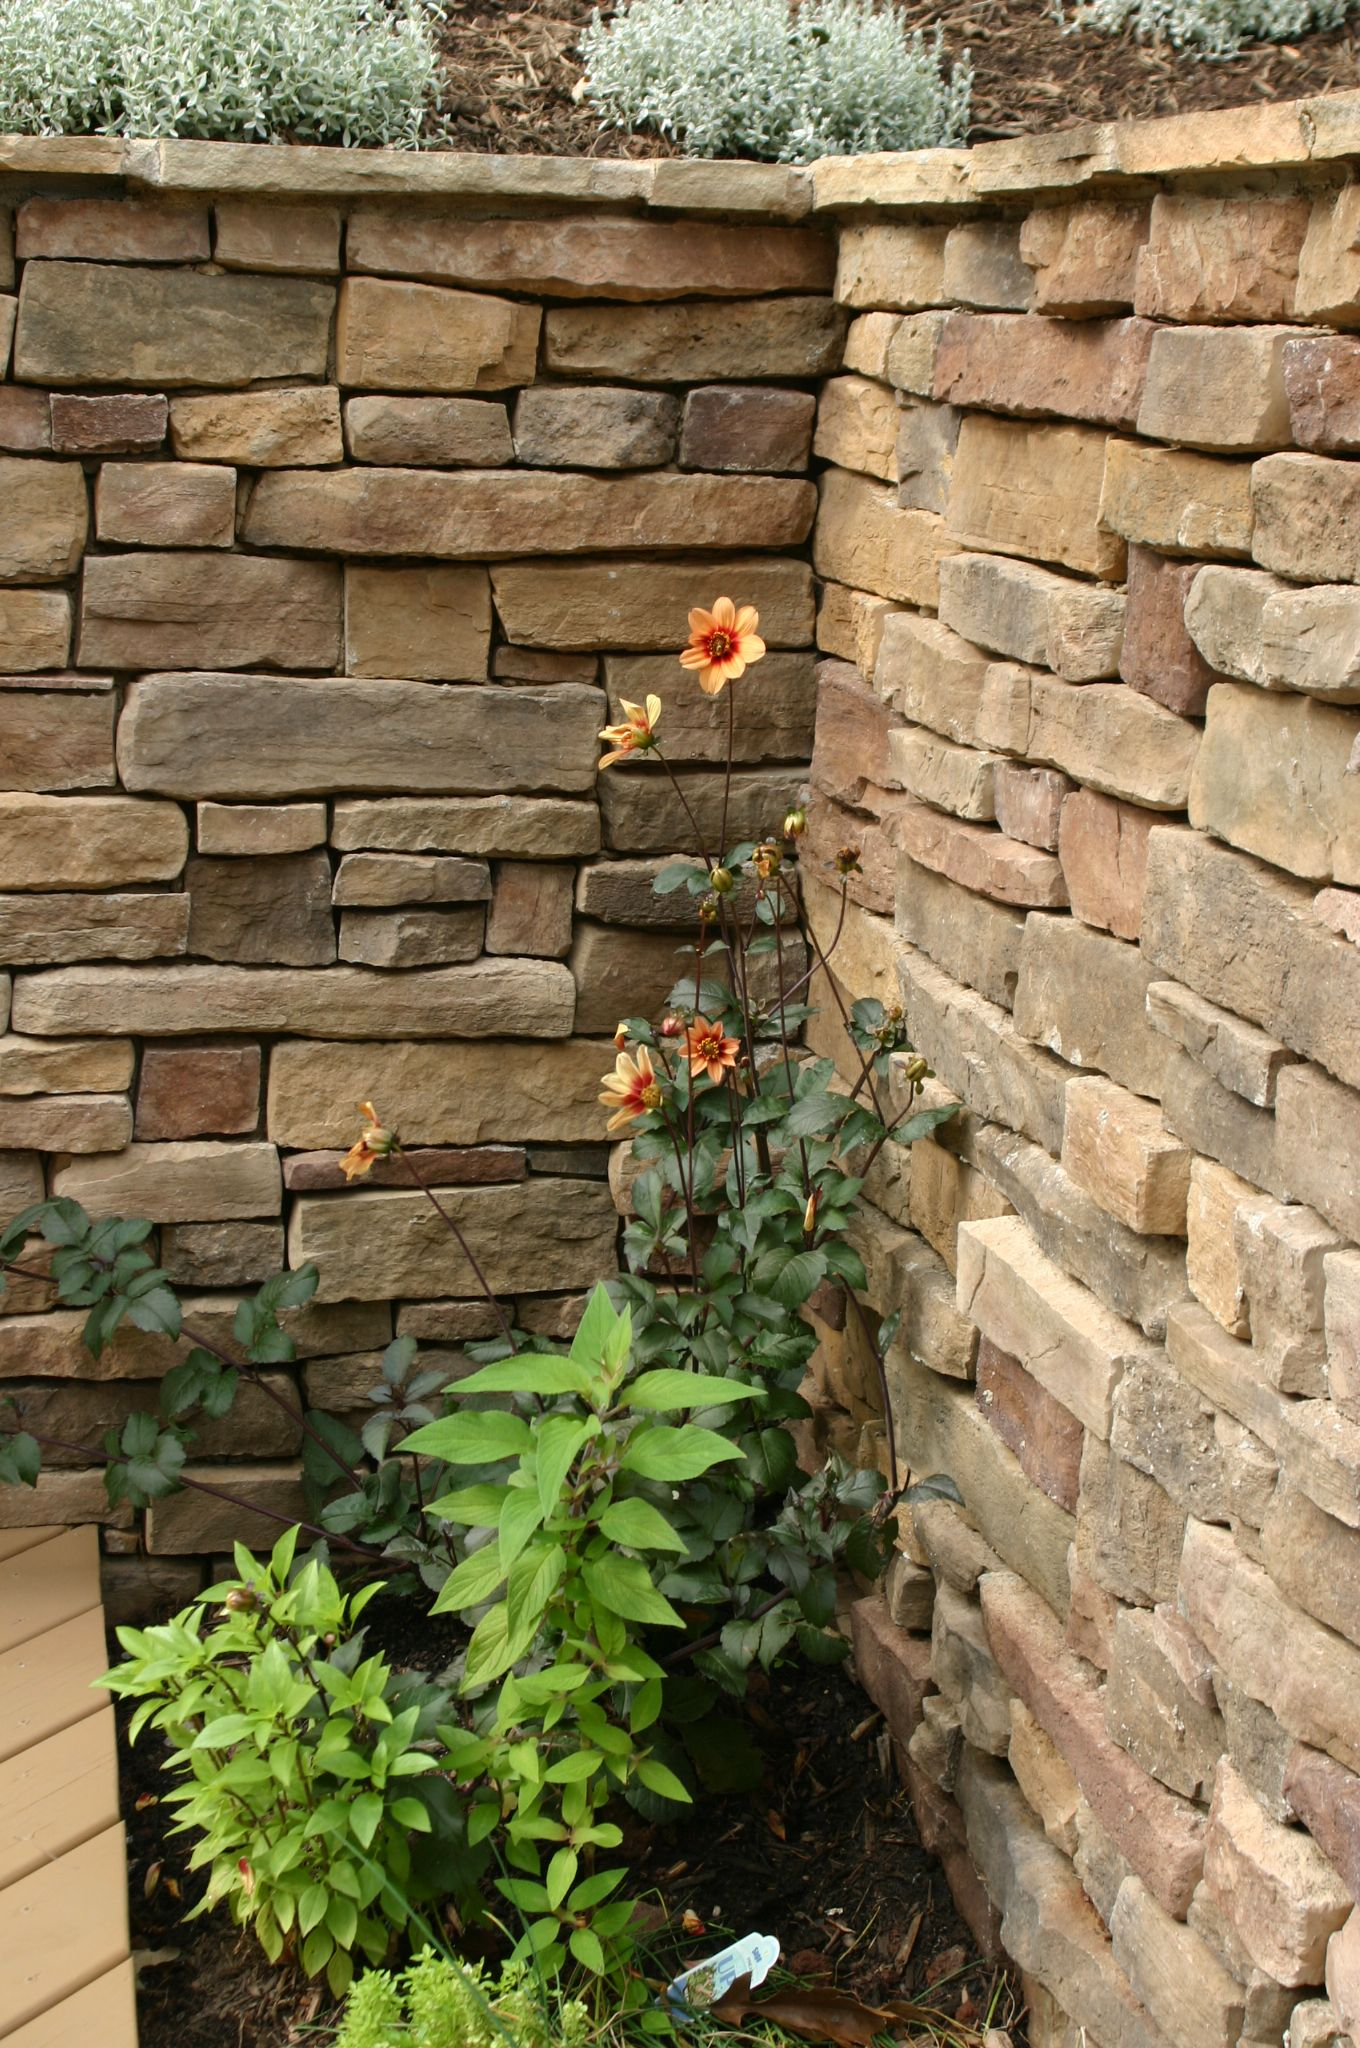 403 Forbidden Landscaping Inspiration Landscaping With Rocks Stone Veneer Wall